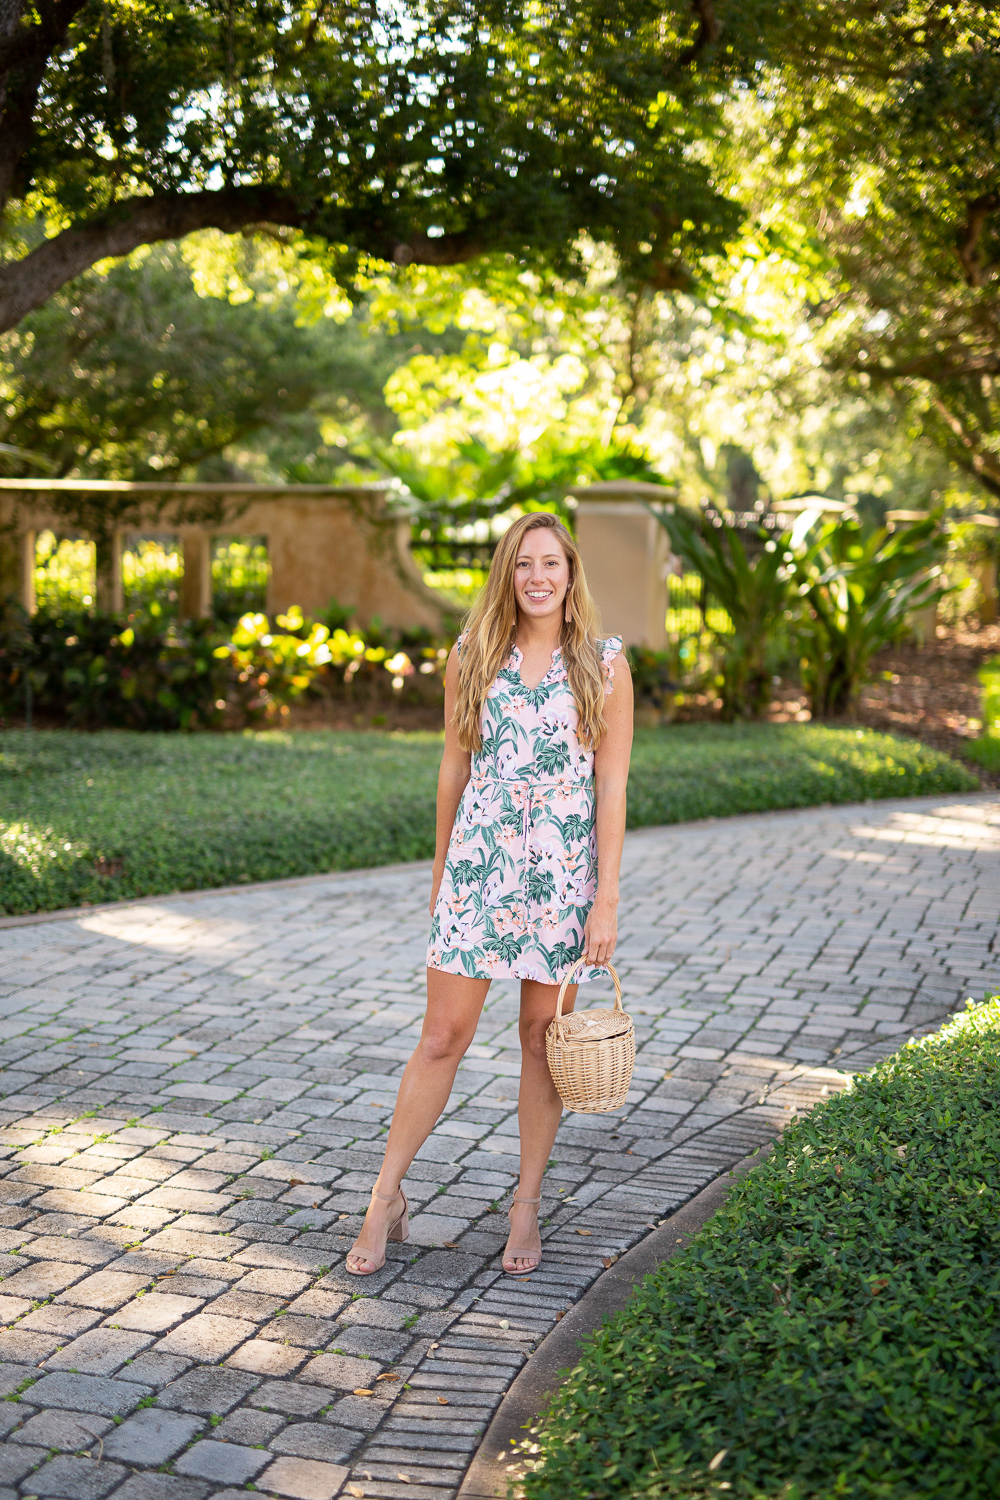 What to Wear to a Wedding: Floral, Maxi and Solid Colored Dresses | Sunshine Style